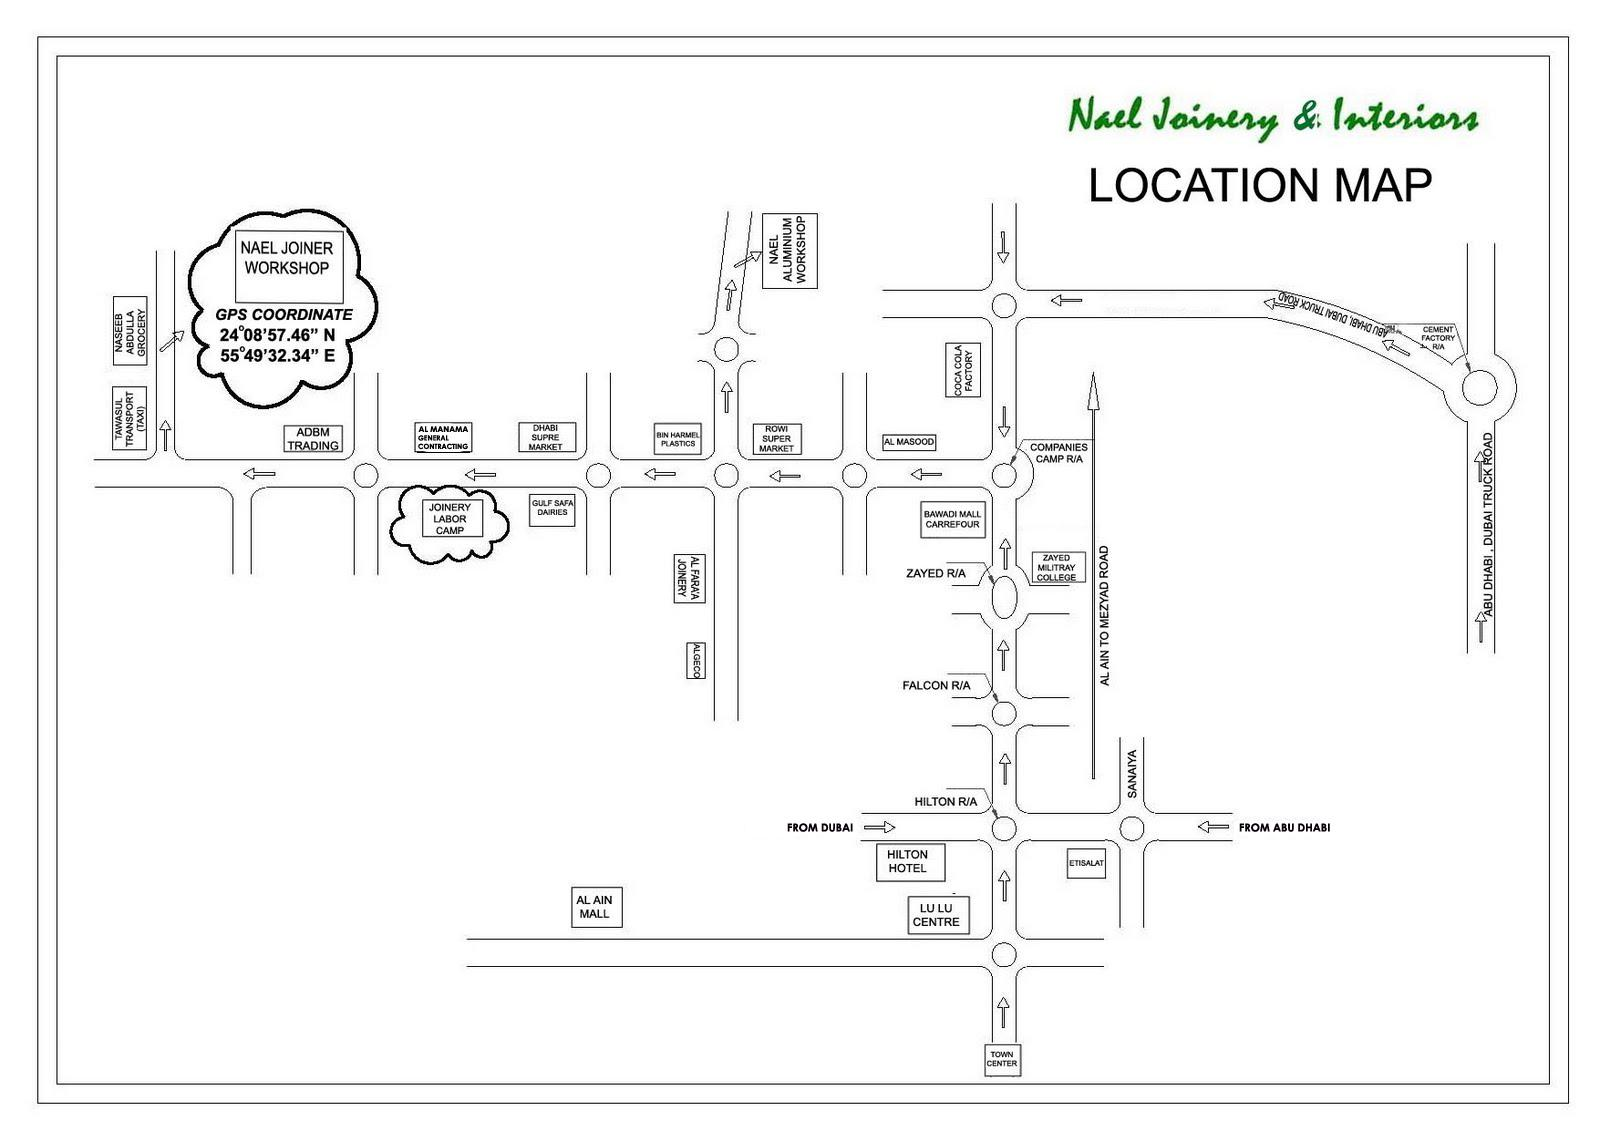 Location Map Nael Joinery Amp Interiors